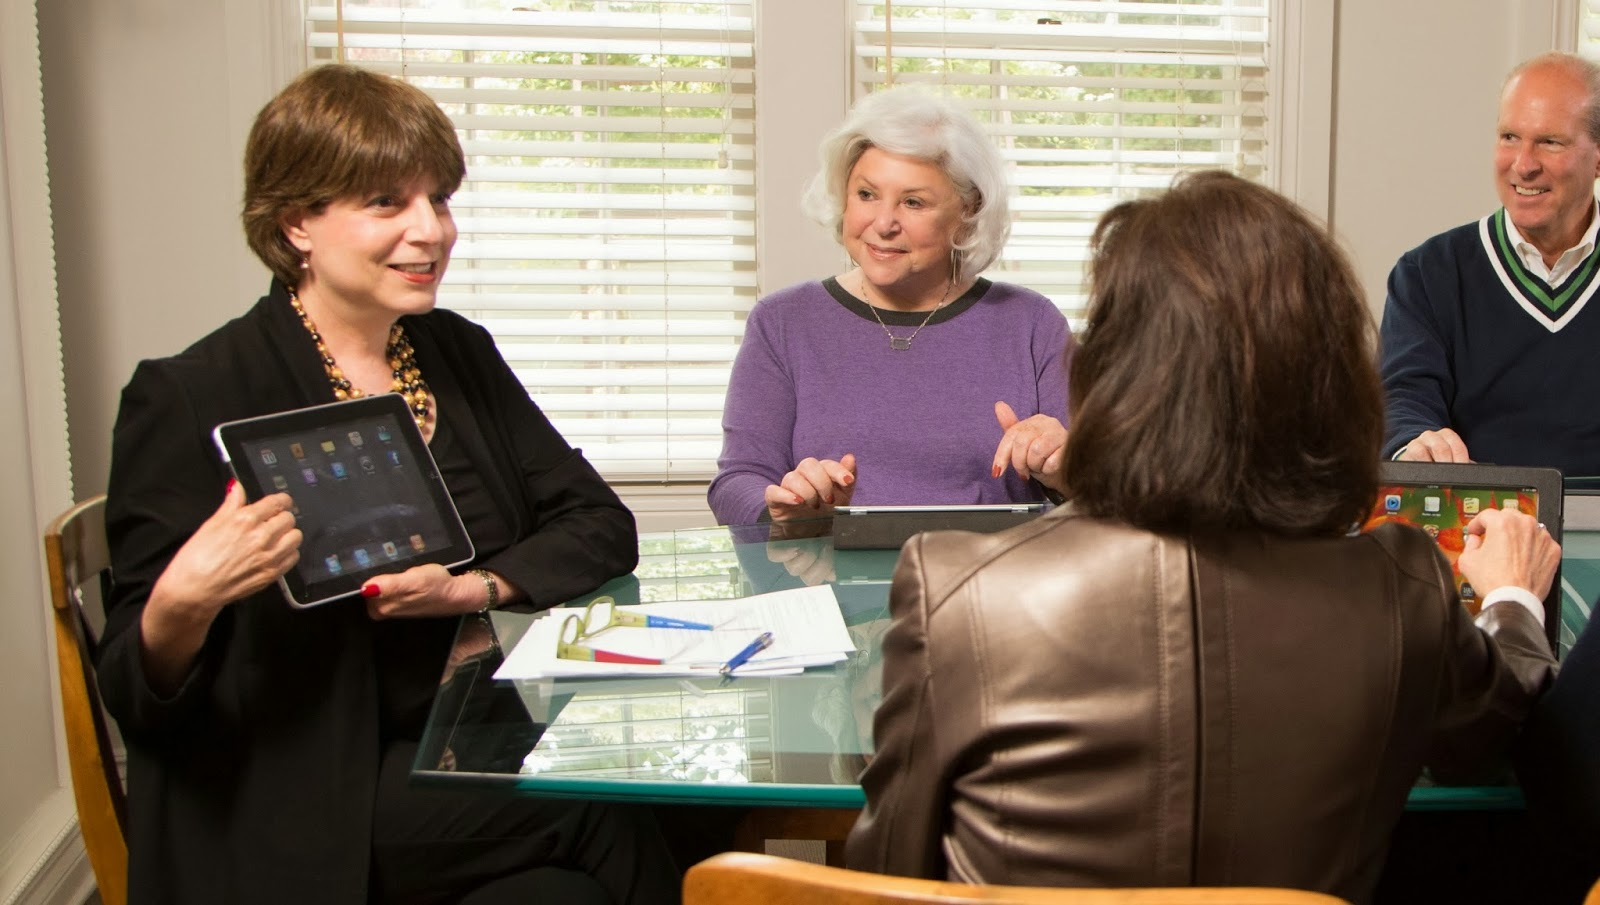 Suzie Mitchell of Clear Writing Solutions helps seniors and Boomers understand technology